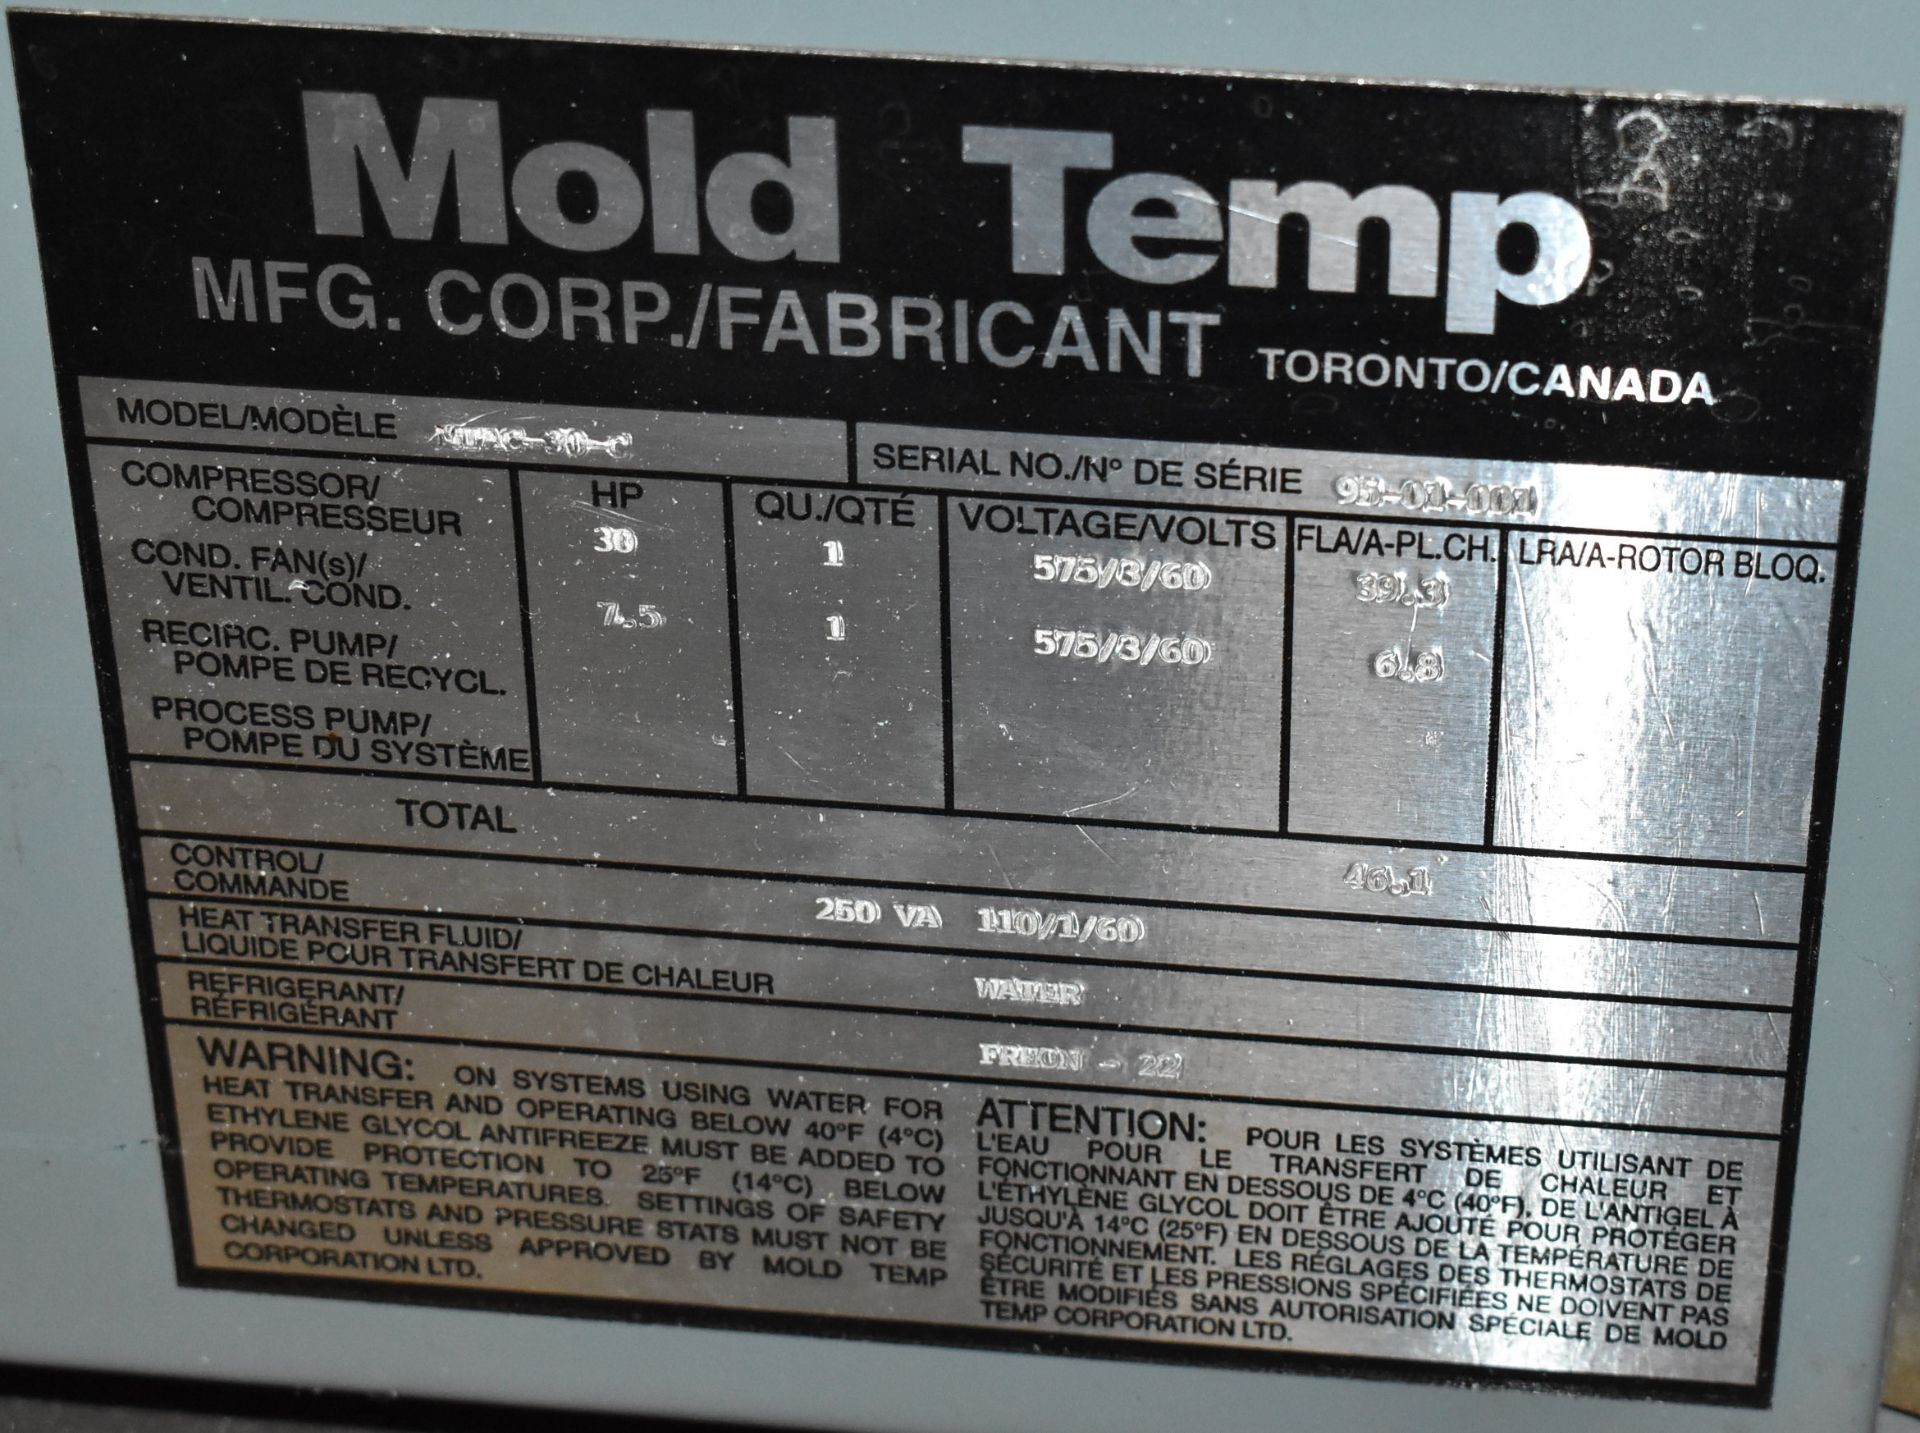 MOLD TEMP MAC-30-C 30 HP CHILLER UNIT, S/N: 05-01-001 (CI) (LOCATED IN BRAMPTON, ON) [RIGGING FEES - Image 4 of 4